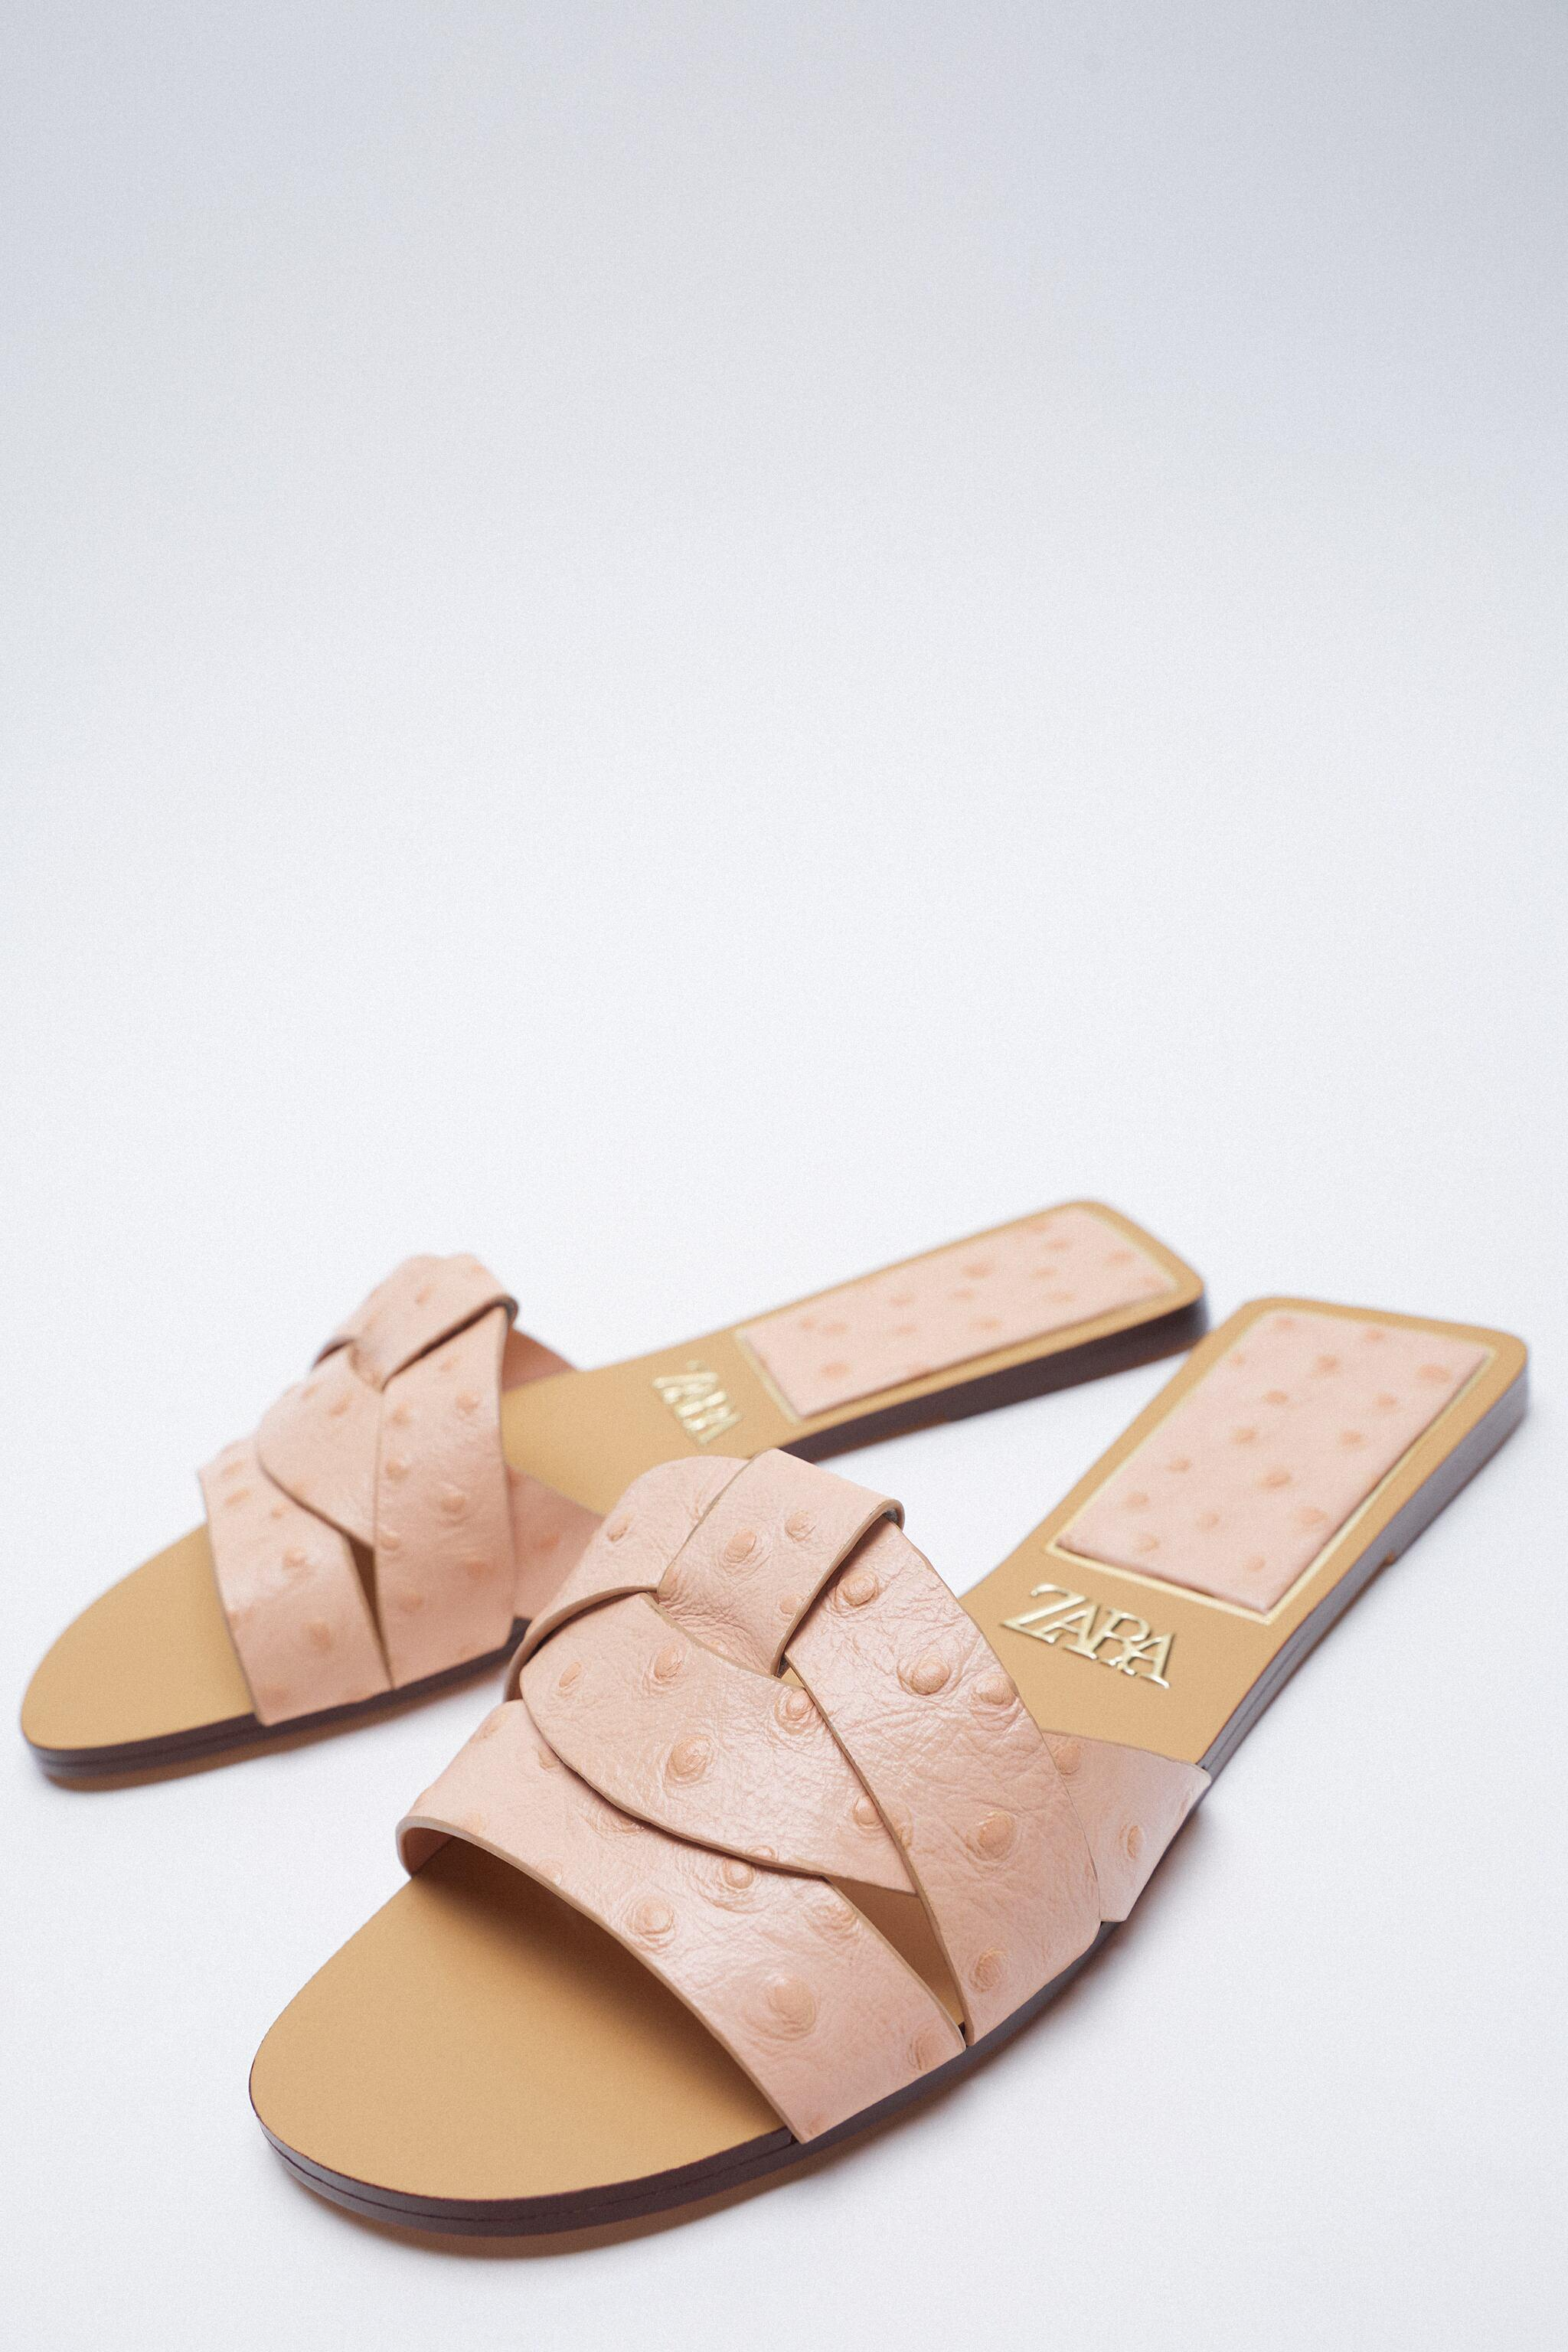 LOW HEELED CROSSED LEATHER SANDALS 2